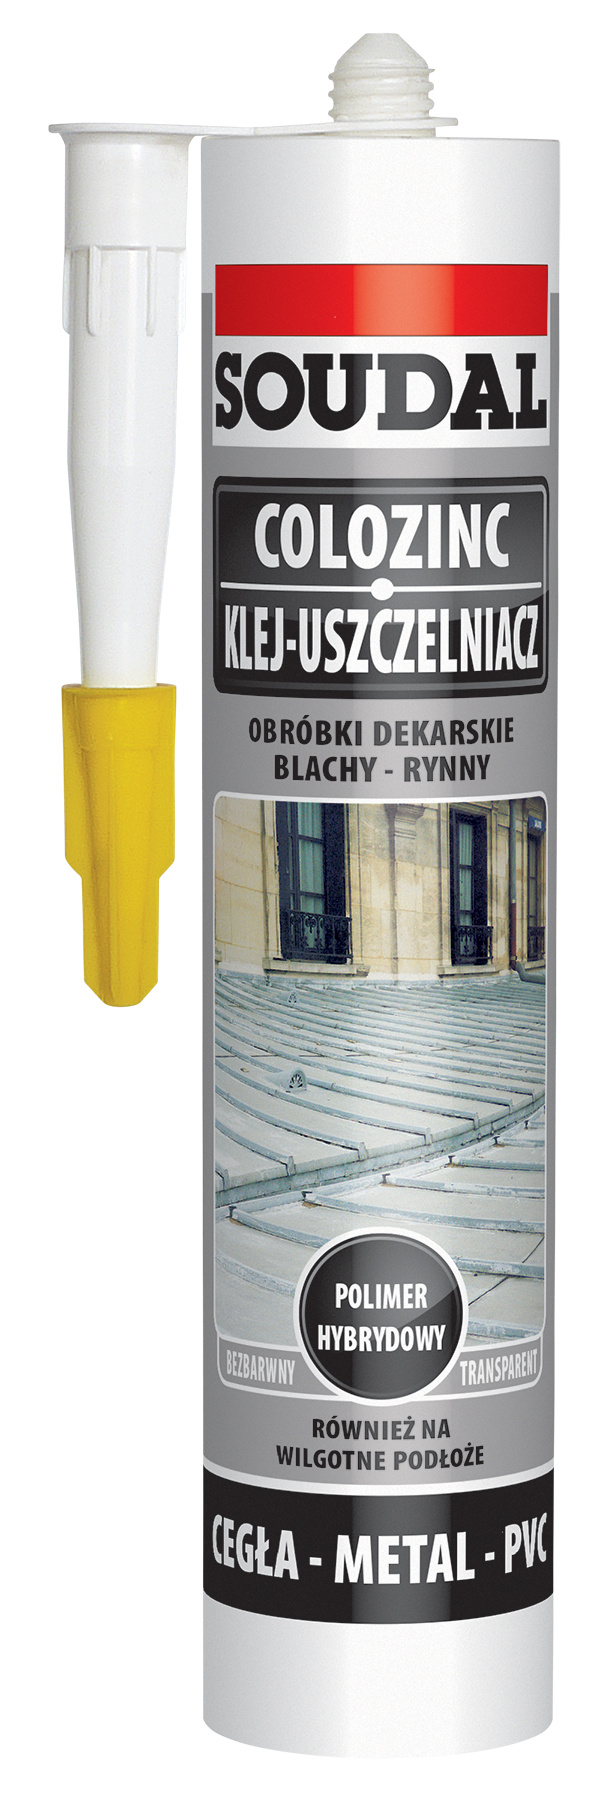 www.dachholding.com klej do blach colozinc